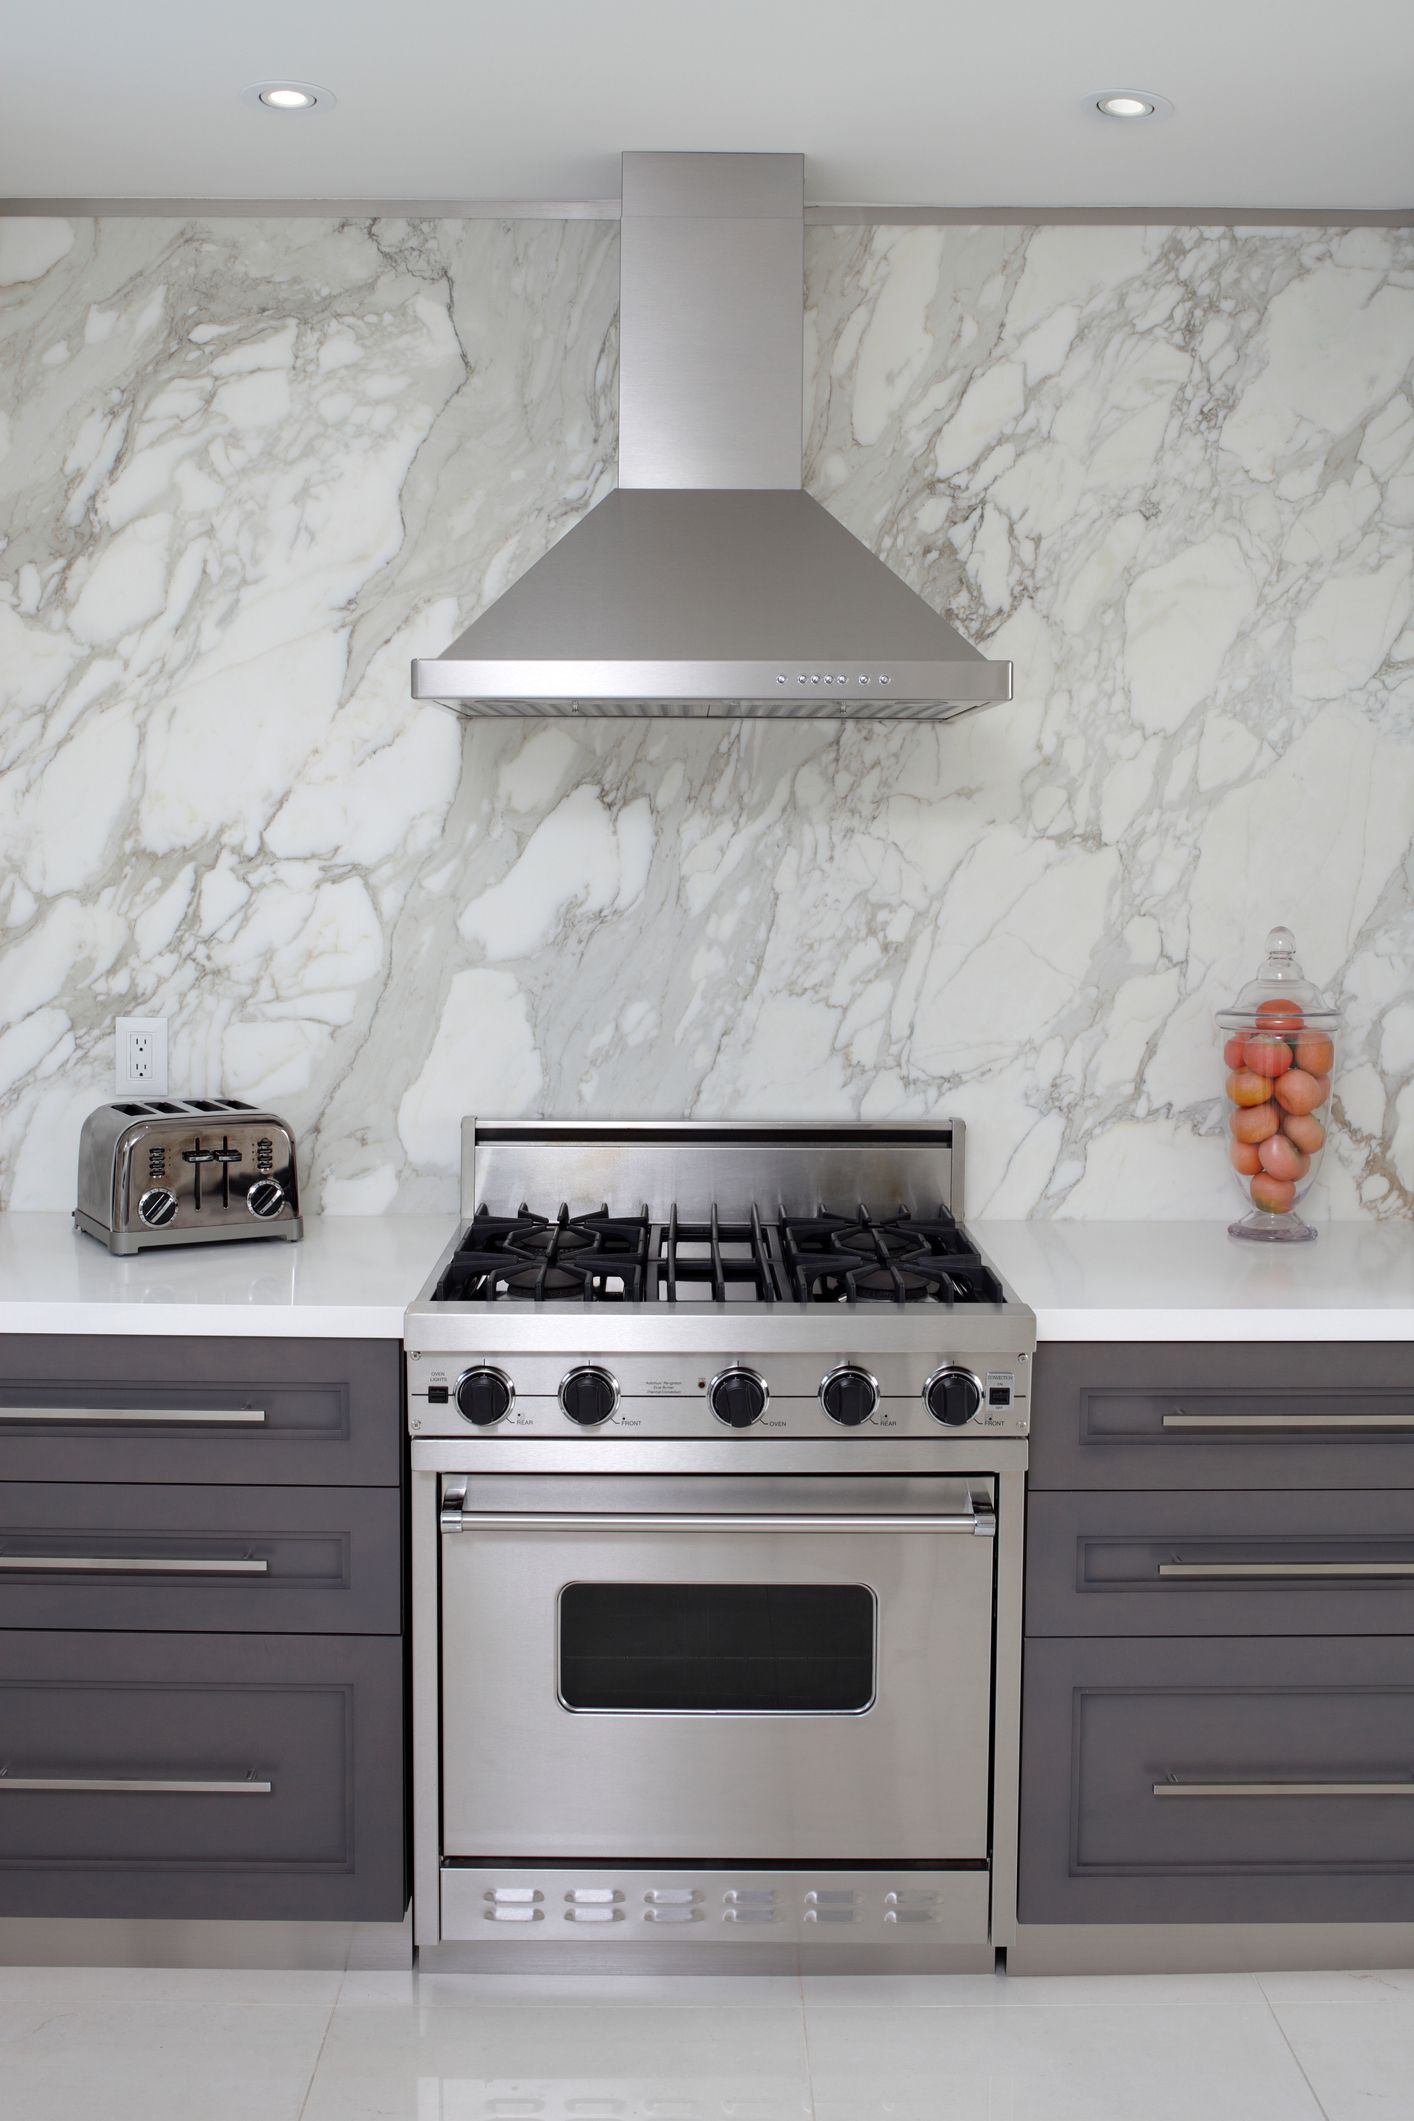 to clean a kitchen range hood and filter